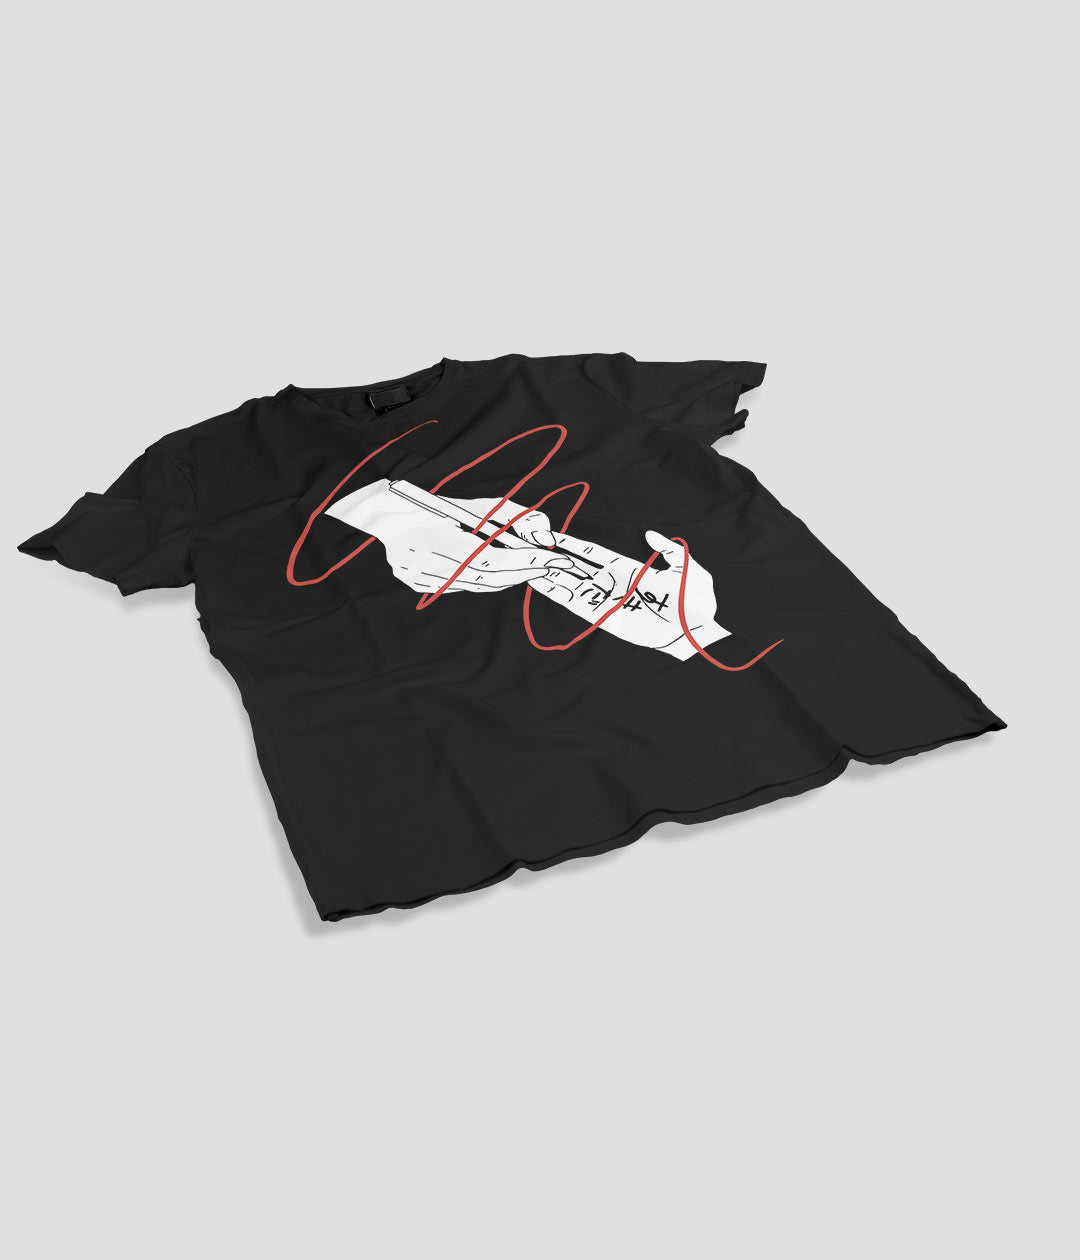 black t shirt with anime hands and red ribbon